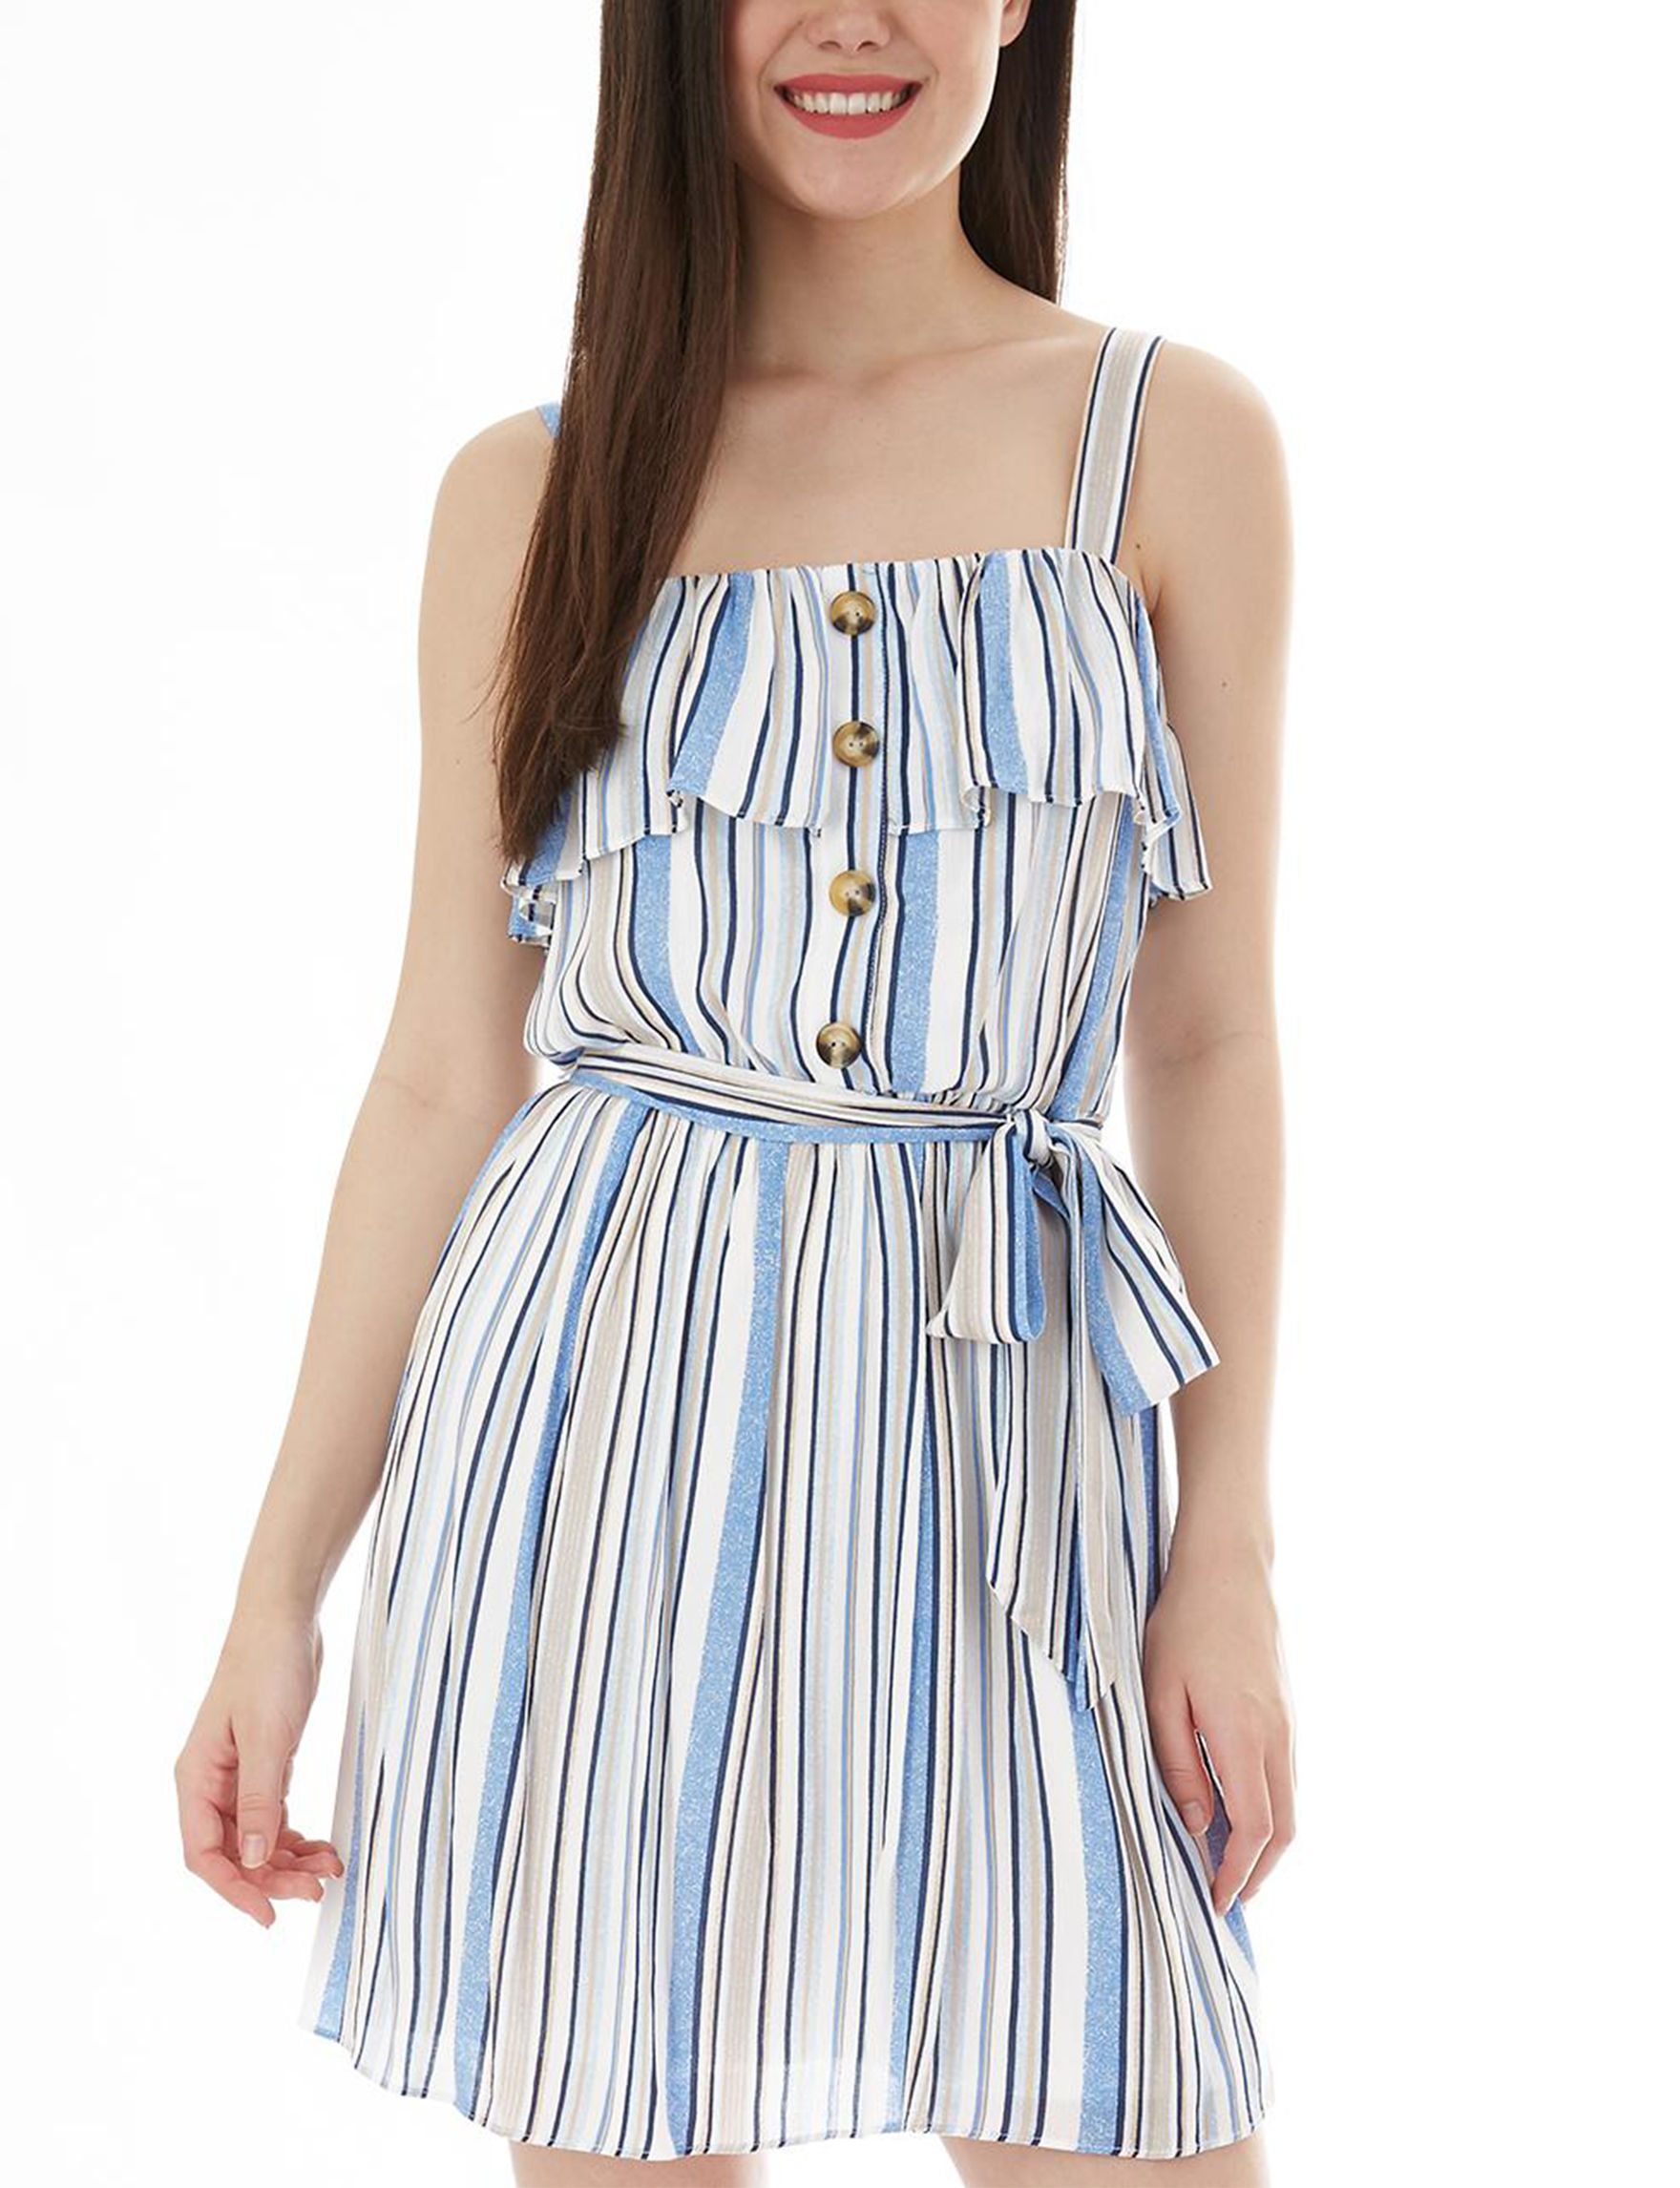 A. Byer White Everyday & Casual Fit & Flare Dresses